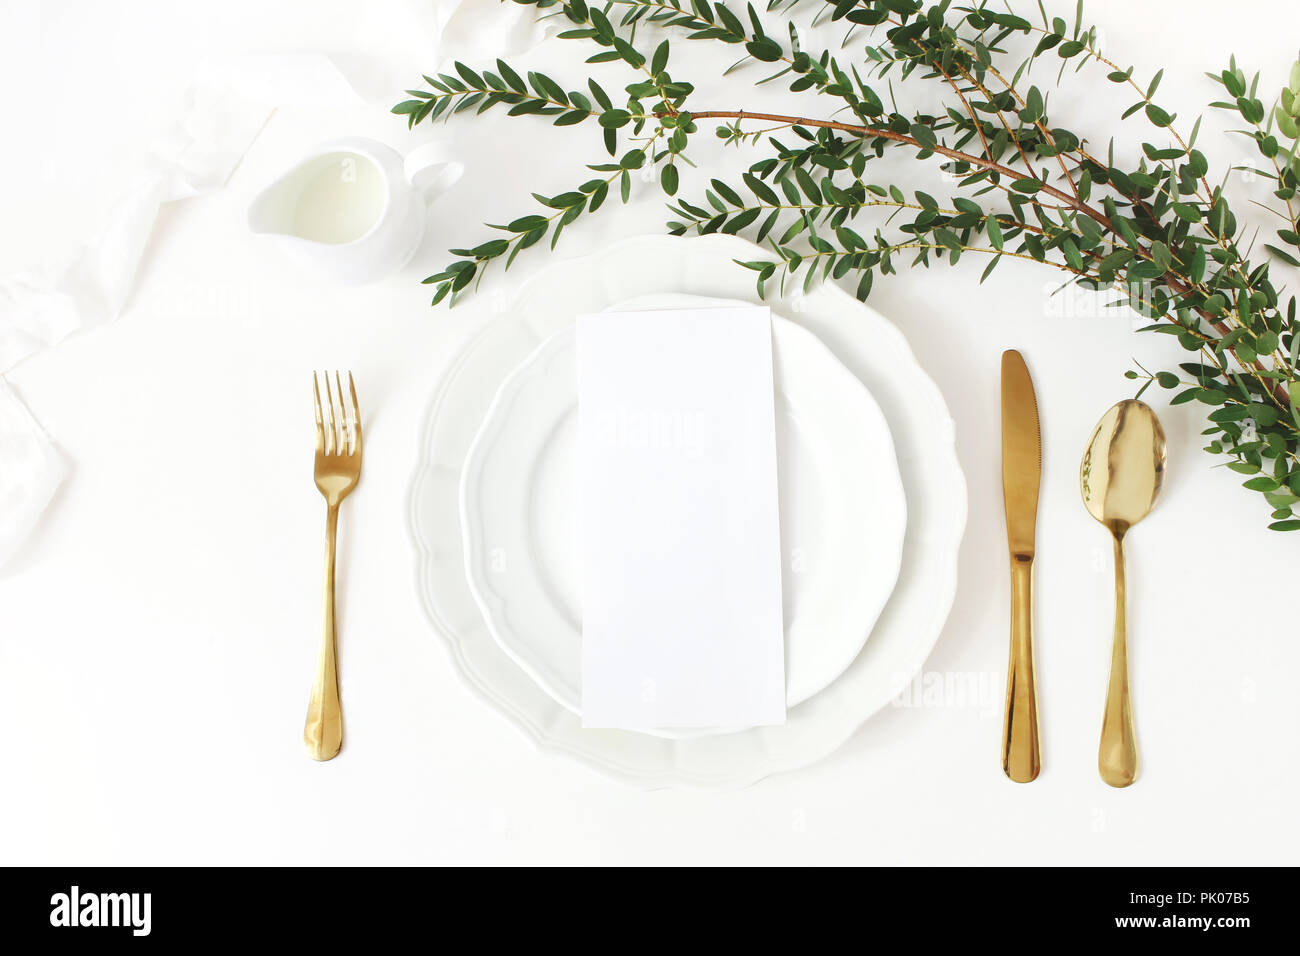 Festive wedding, birthday table setting with golden cutlery, eucalyptus parvifolia branch, porcelain plate, milk and silk ribbon. Blank card mockup. Rustic restaurant menu concept. Flat lay, top view Stock Photo